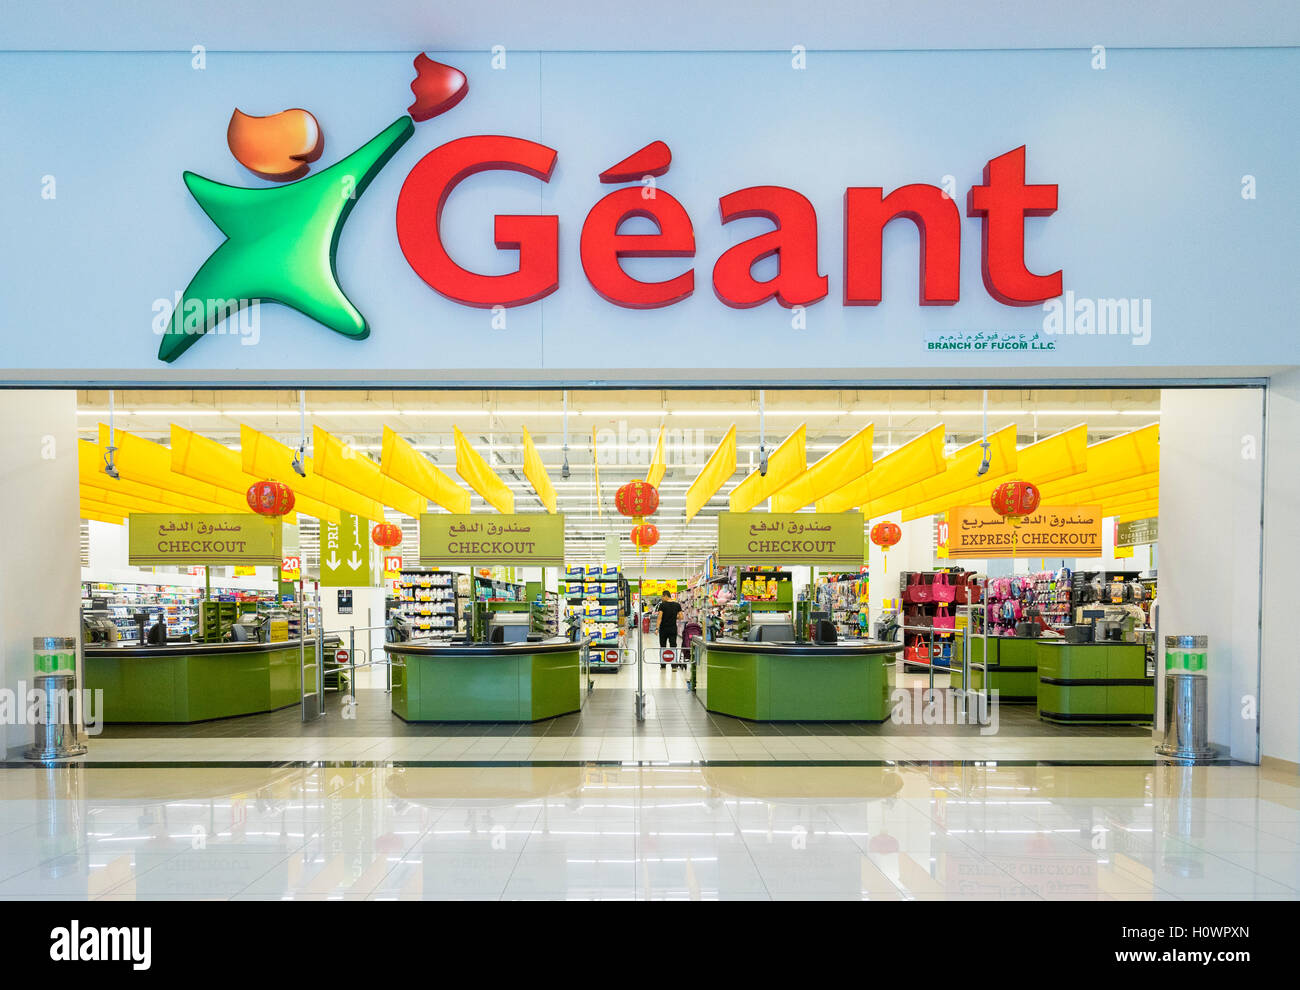 French supermarket chain Geant store at Dragon Mart 2 Chinese themed shopping mall in Dubai, United Arab Emirates - Stock Image